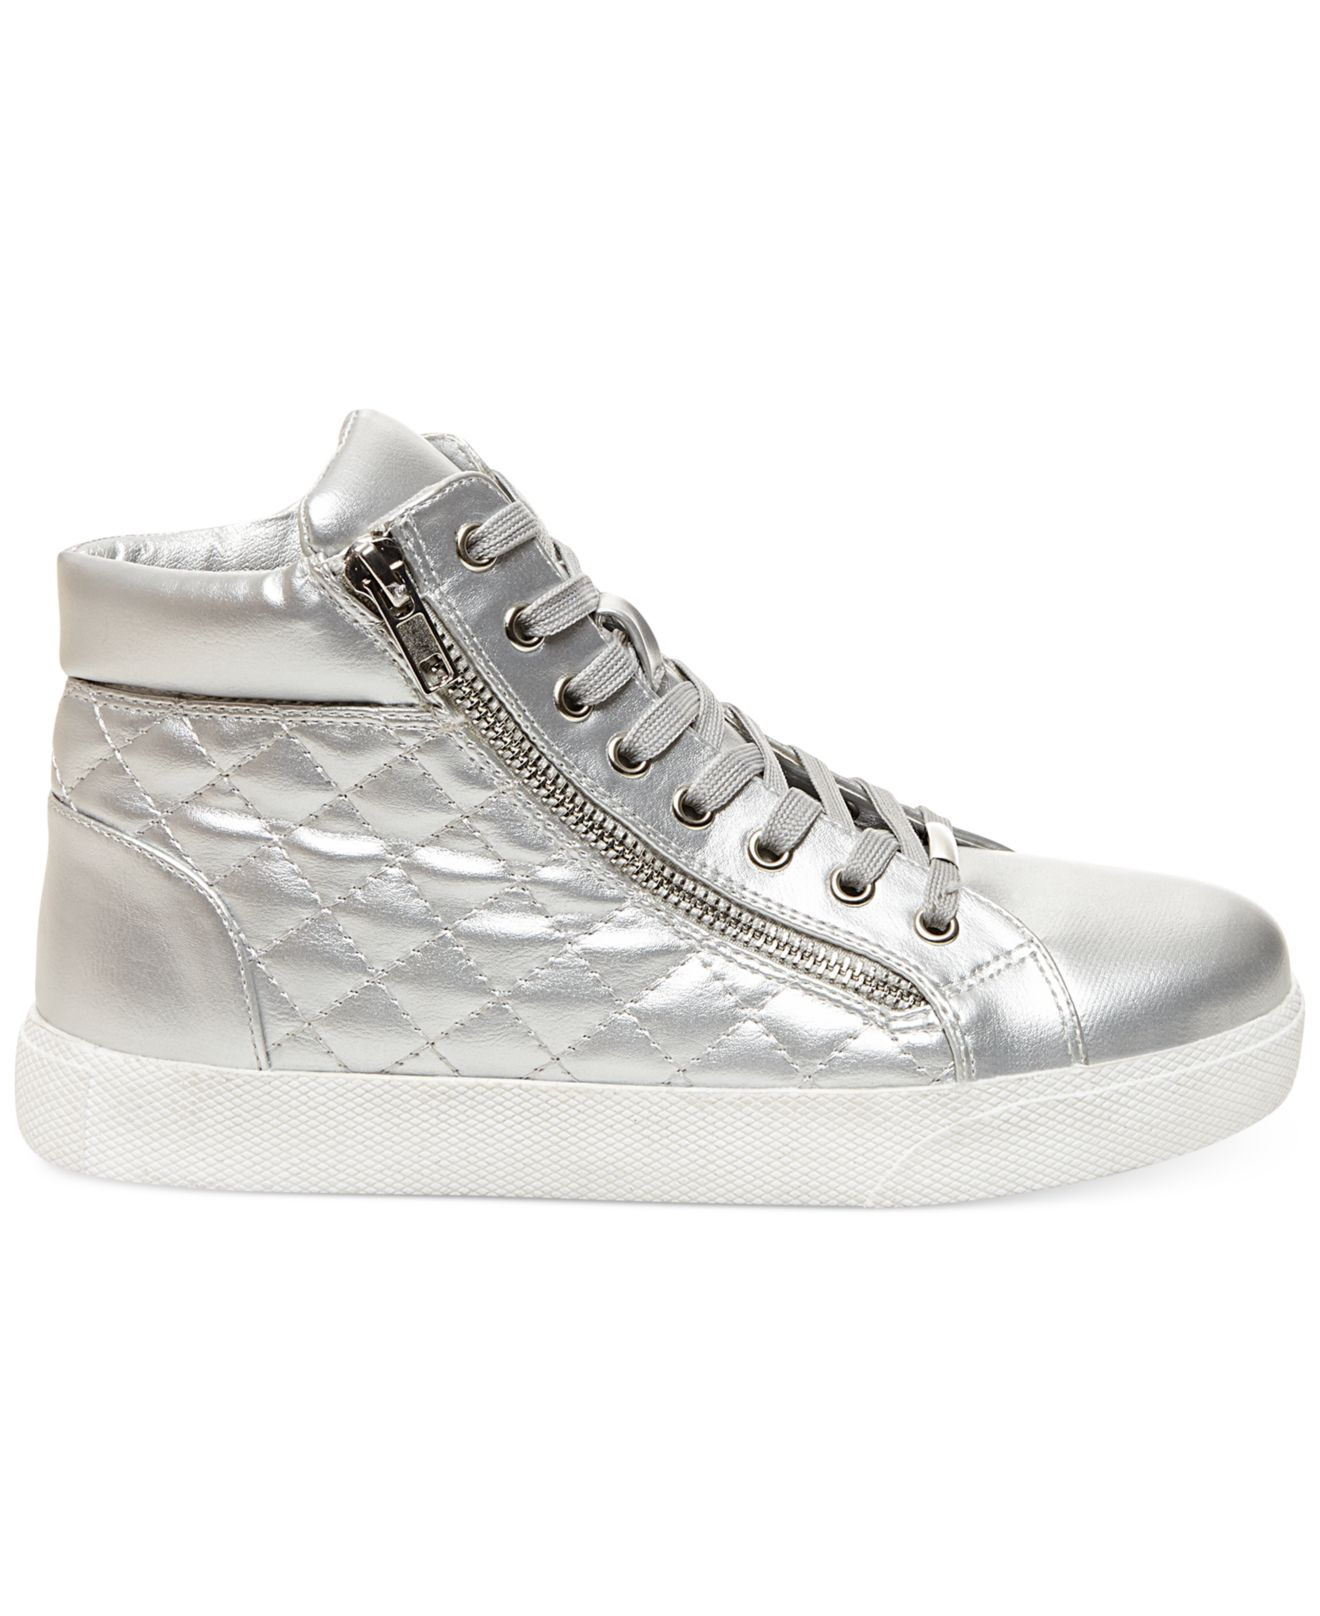 88f9a1f593f Lyst - Steve Madden Decaf Hightop Quilted Platform Sneakers in Metallic